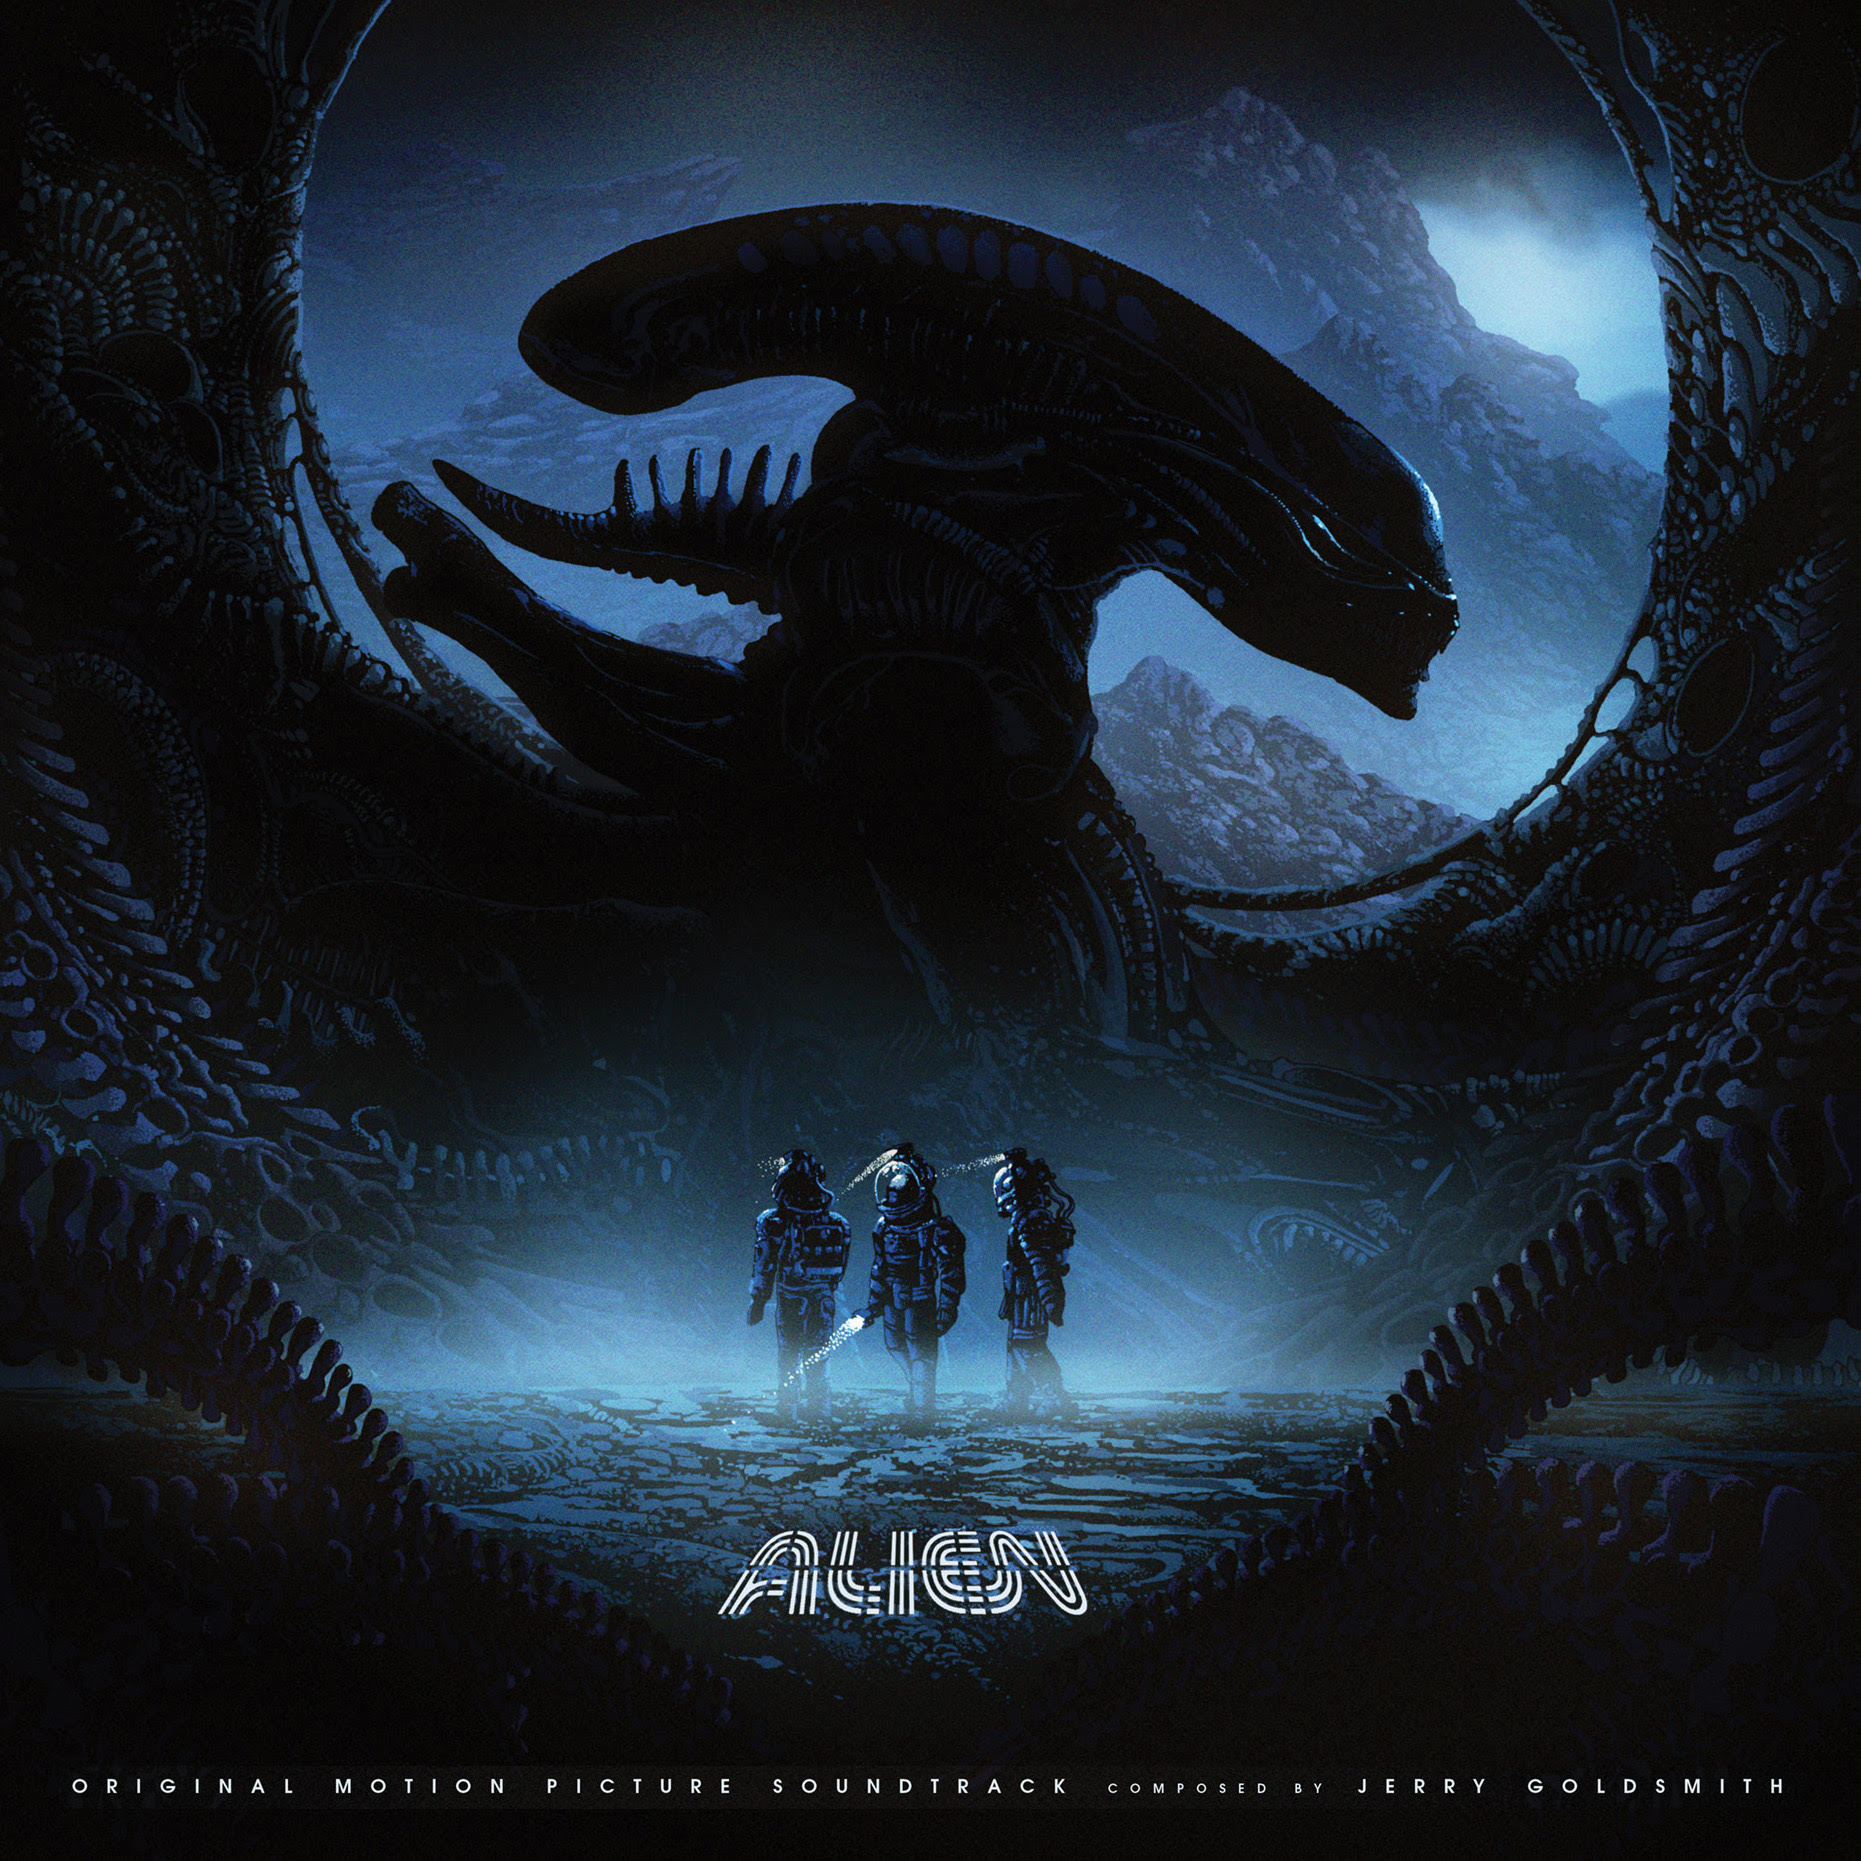 Alien 3 Movie: Alien (1979 Original Soundtrack)